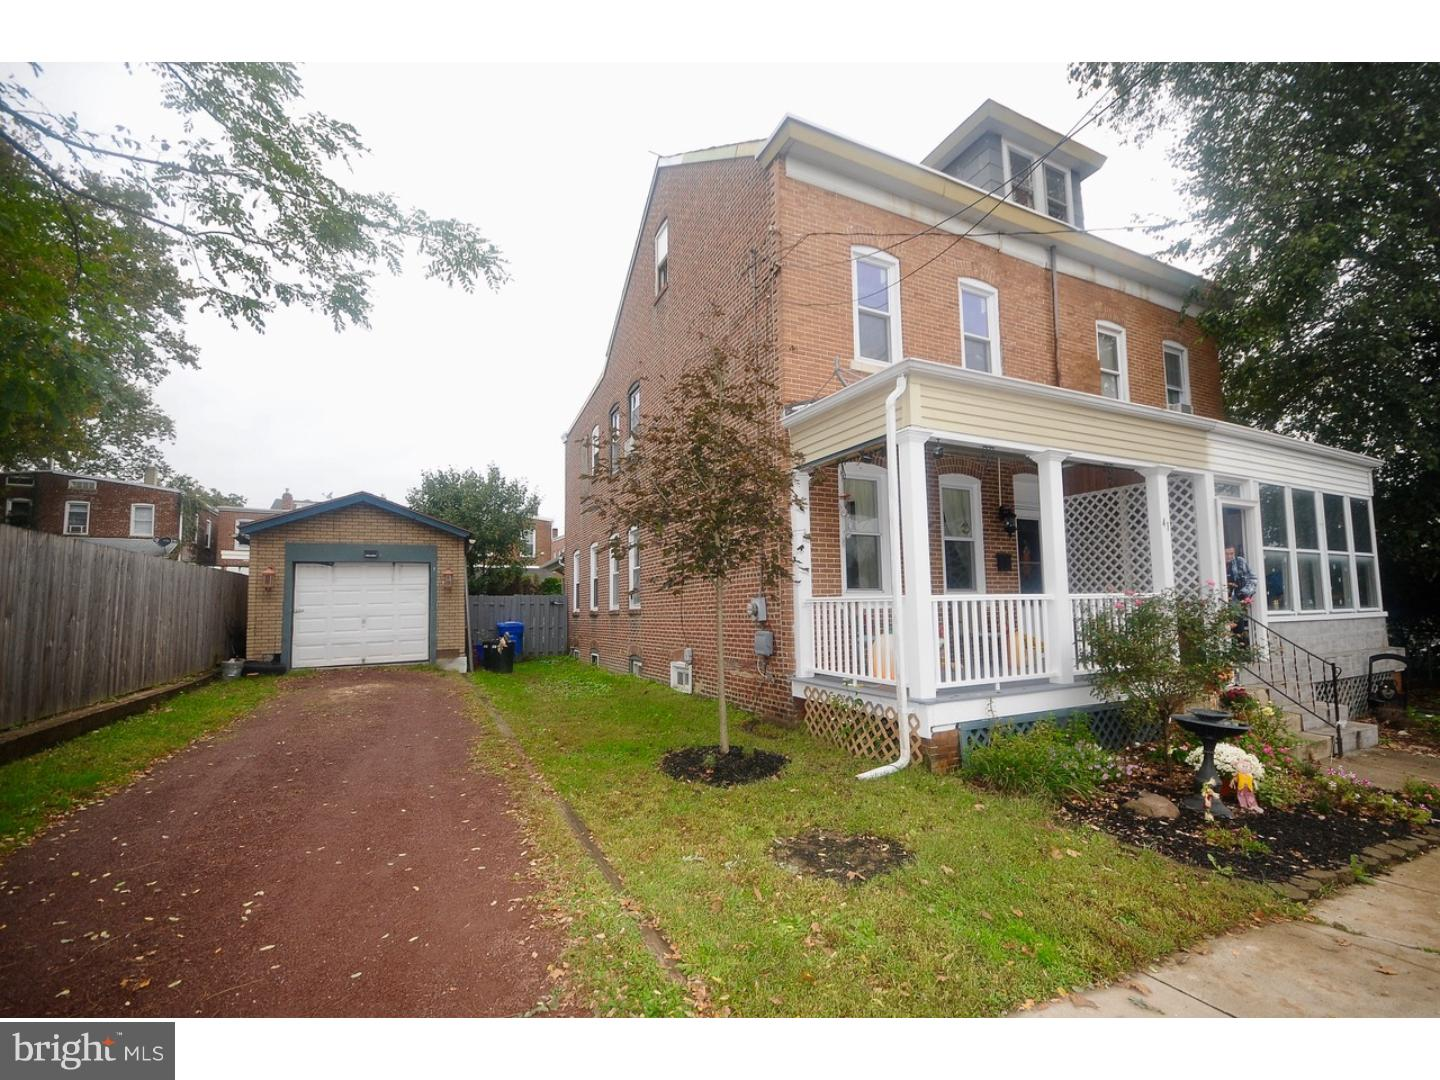 Single Family Home for Sale at 41 NORMAN Avenue Roebling, New Jersey 08554 United States